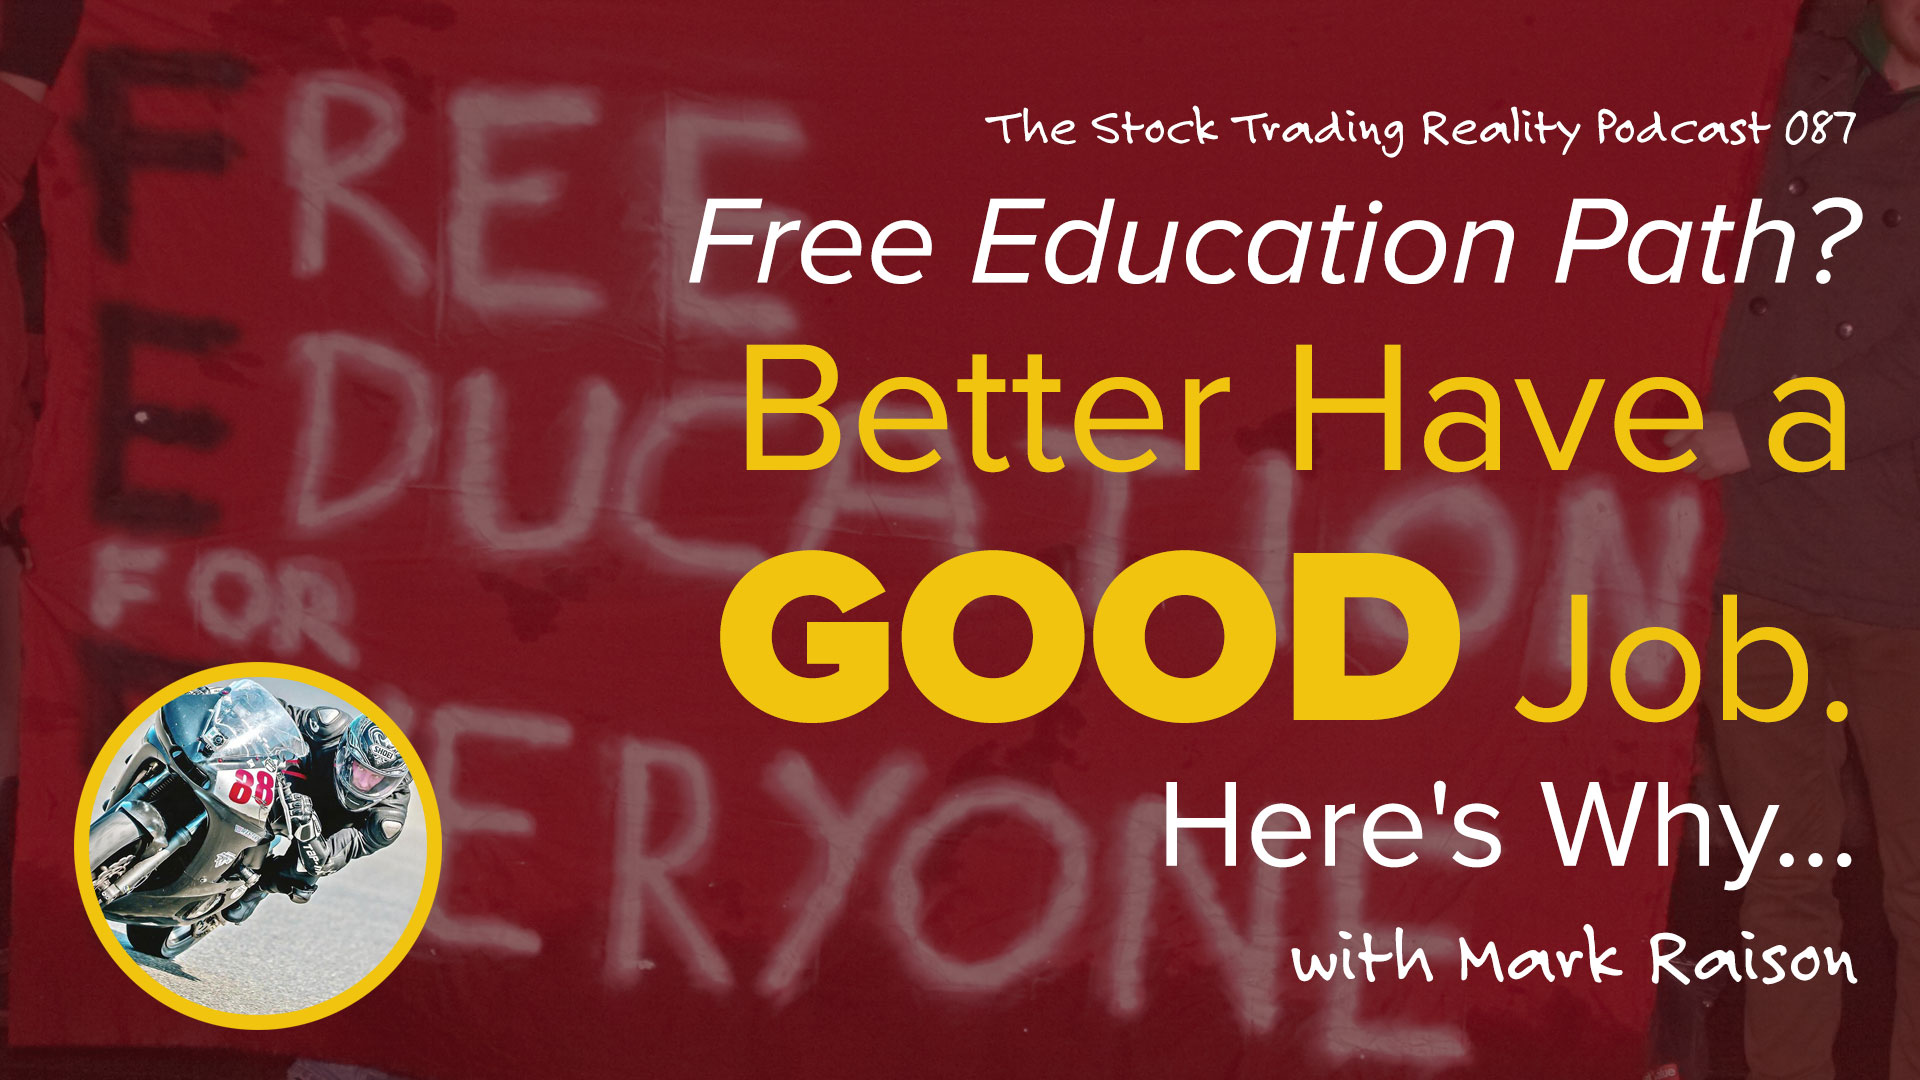 STR 087: Free Education Path? Better Have a GOOD Job. Here's Why...